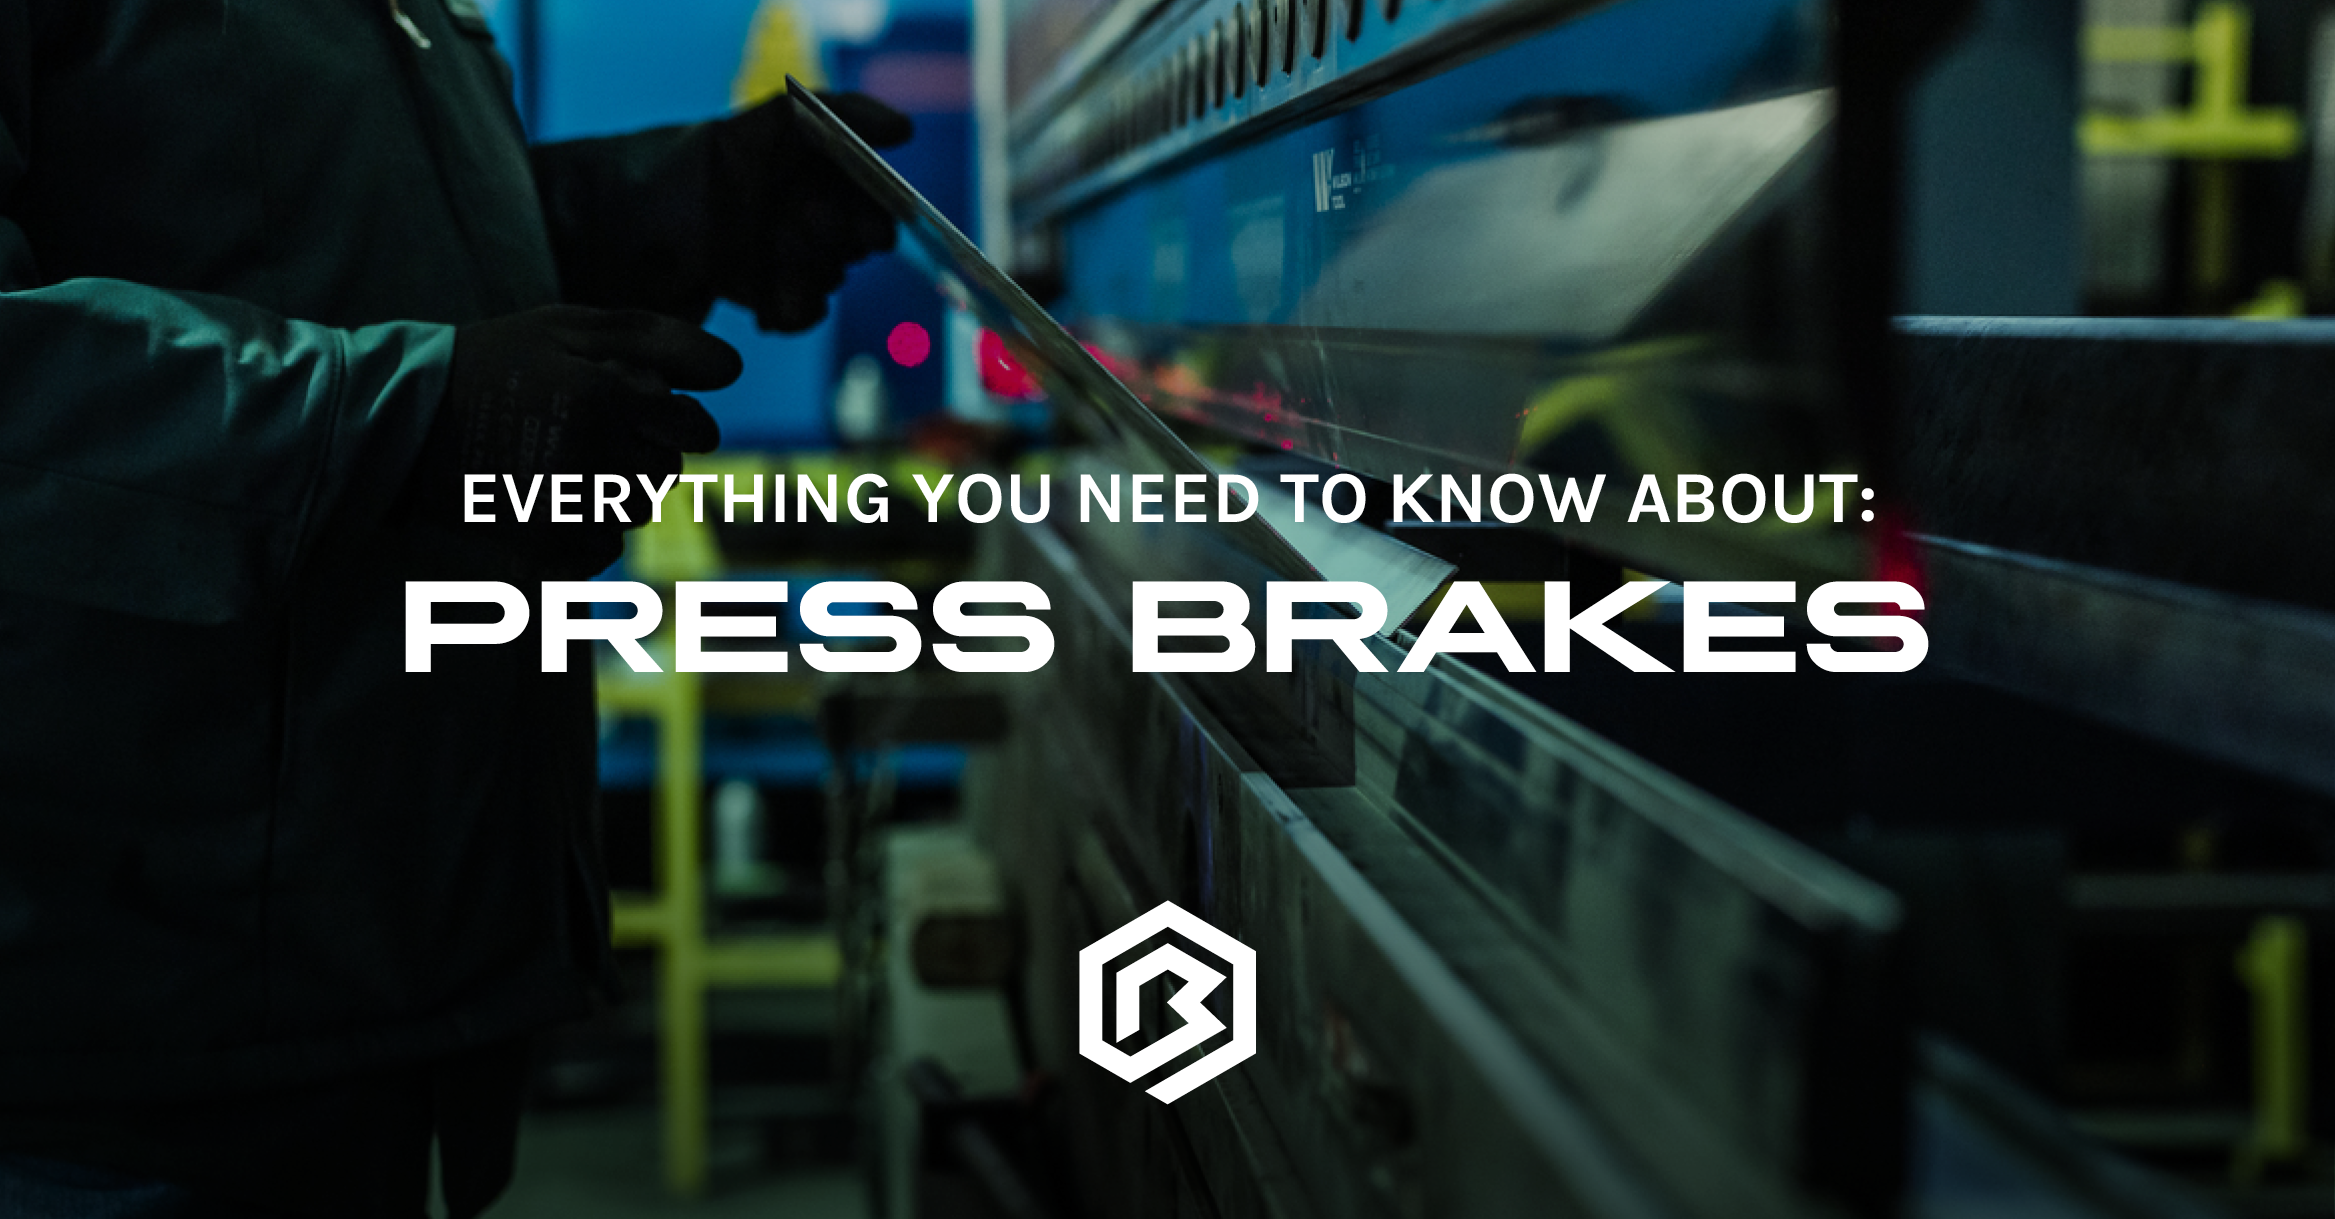 Everything You Need to Know About: Press Brakes